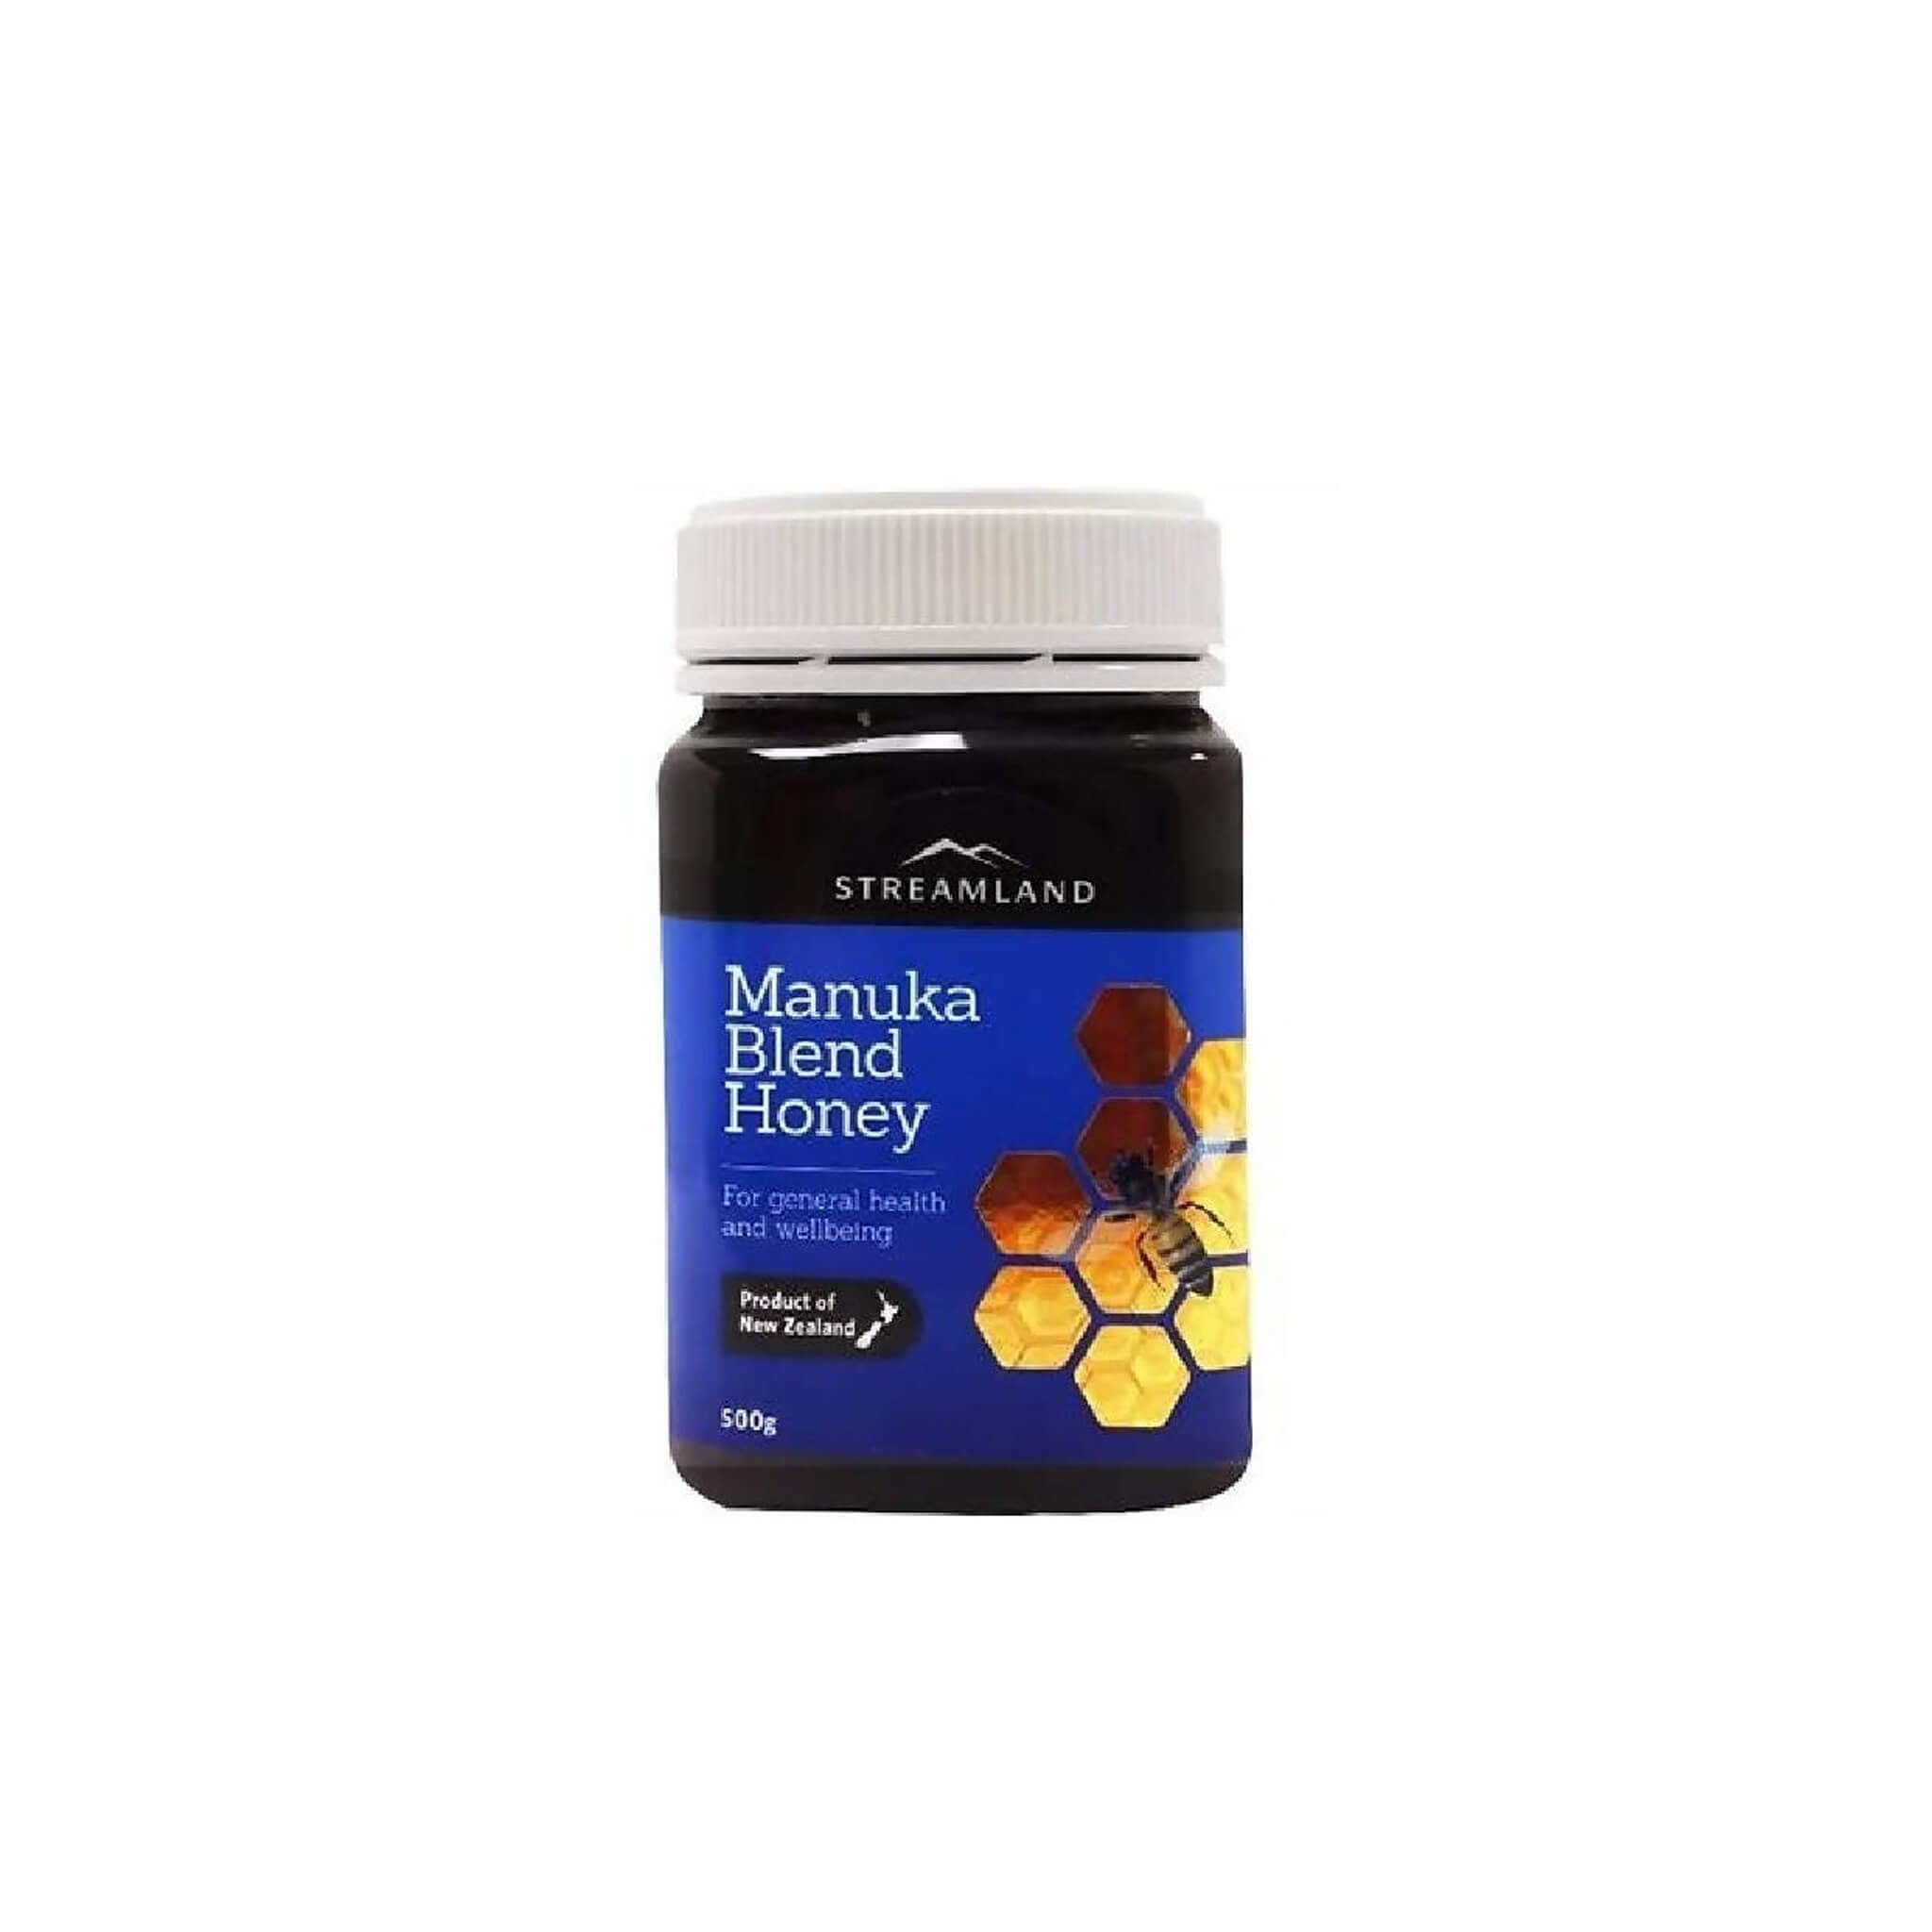 Manuka Blend Honey 250gm - Minar Webstore